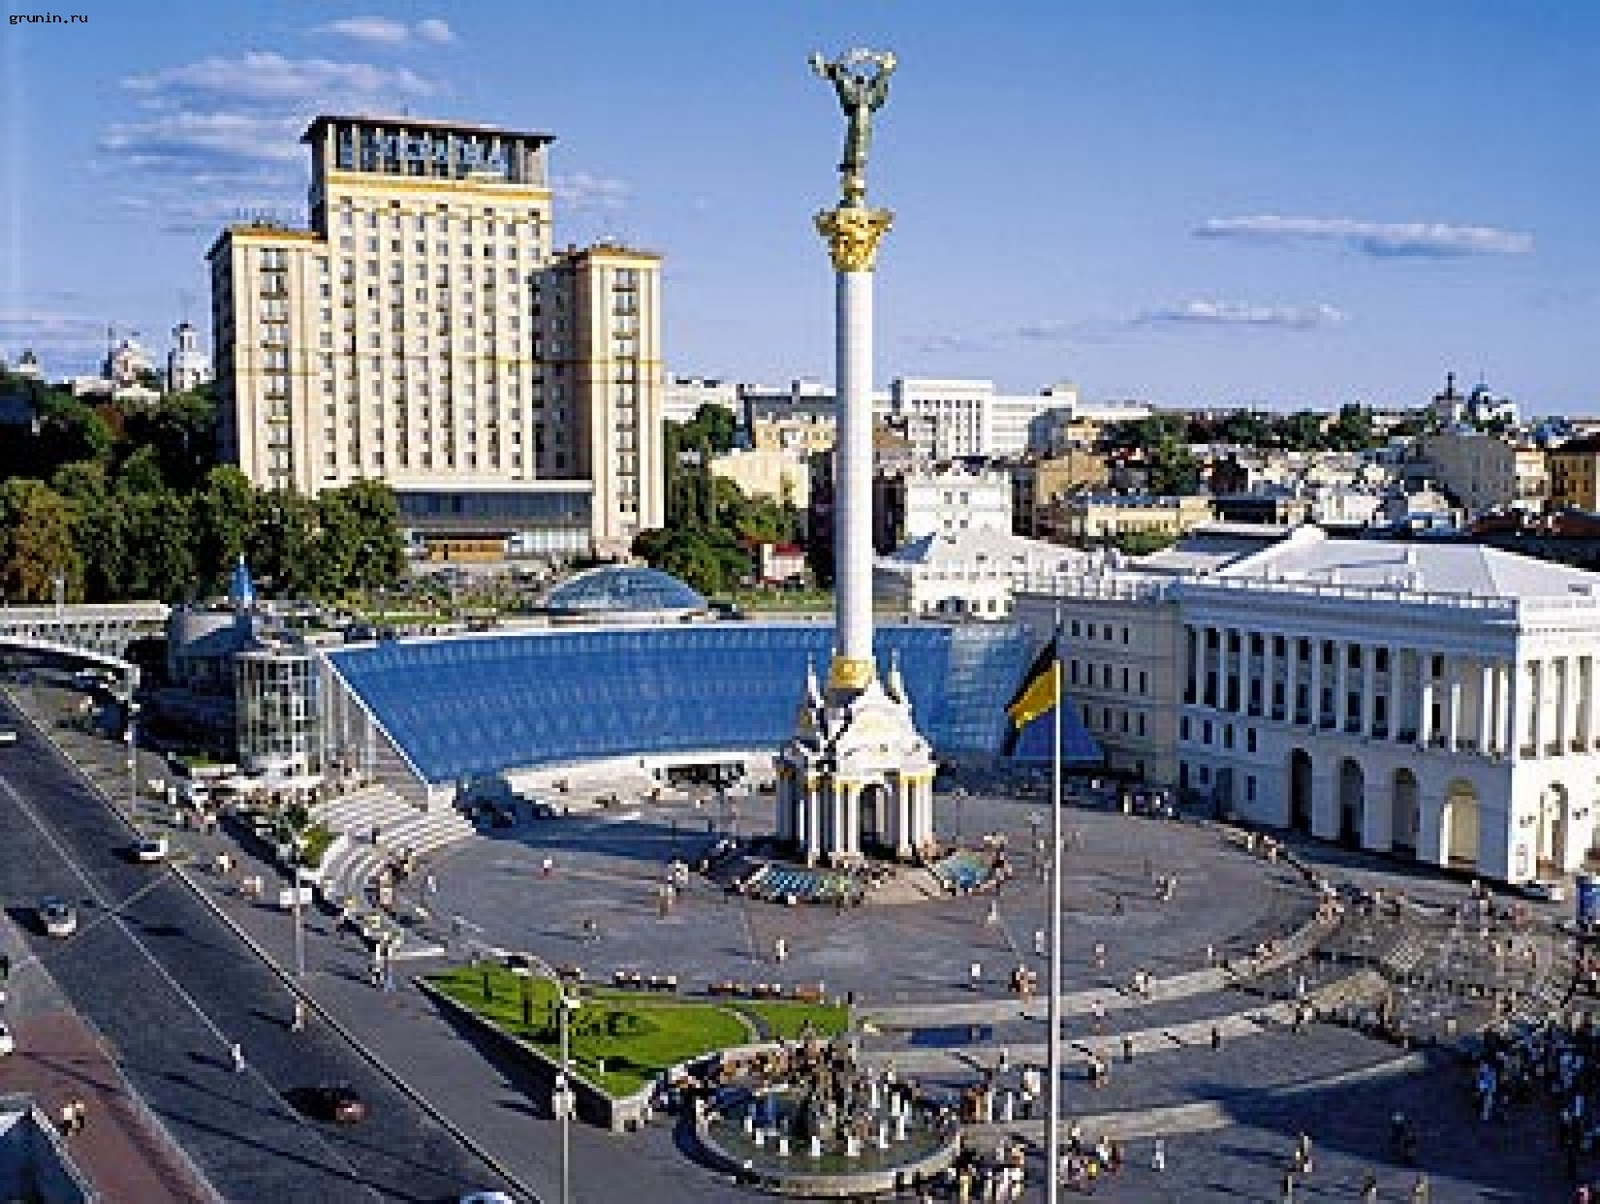 kyiv the capital of ukraine Leading site for foreign individuals and businesses about doing business and investing in ukraine covers business setup, taxation, banking, real.